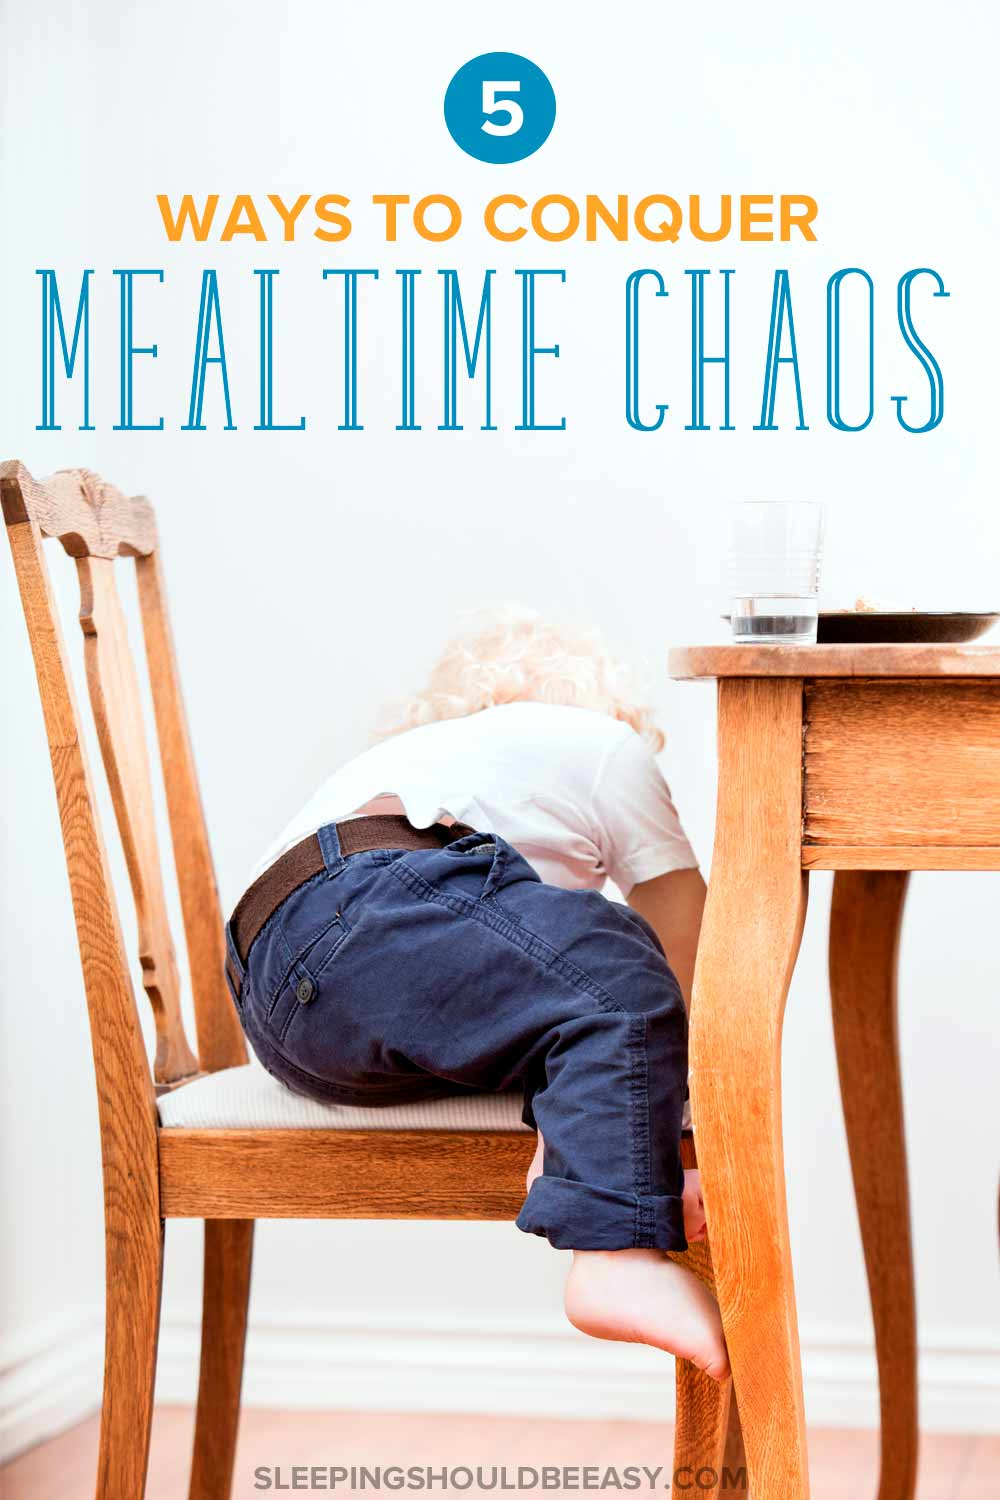 Struggling with mealtime chaos with the kids? Learn effective ways to take the chaos out of dinner with these tips and enjoy your meals once again. #meals